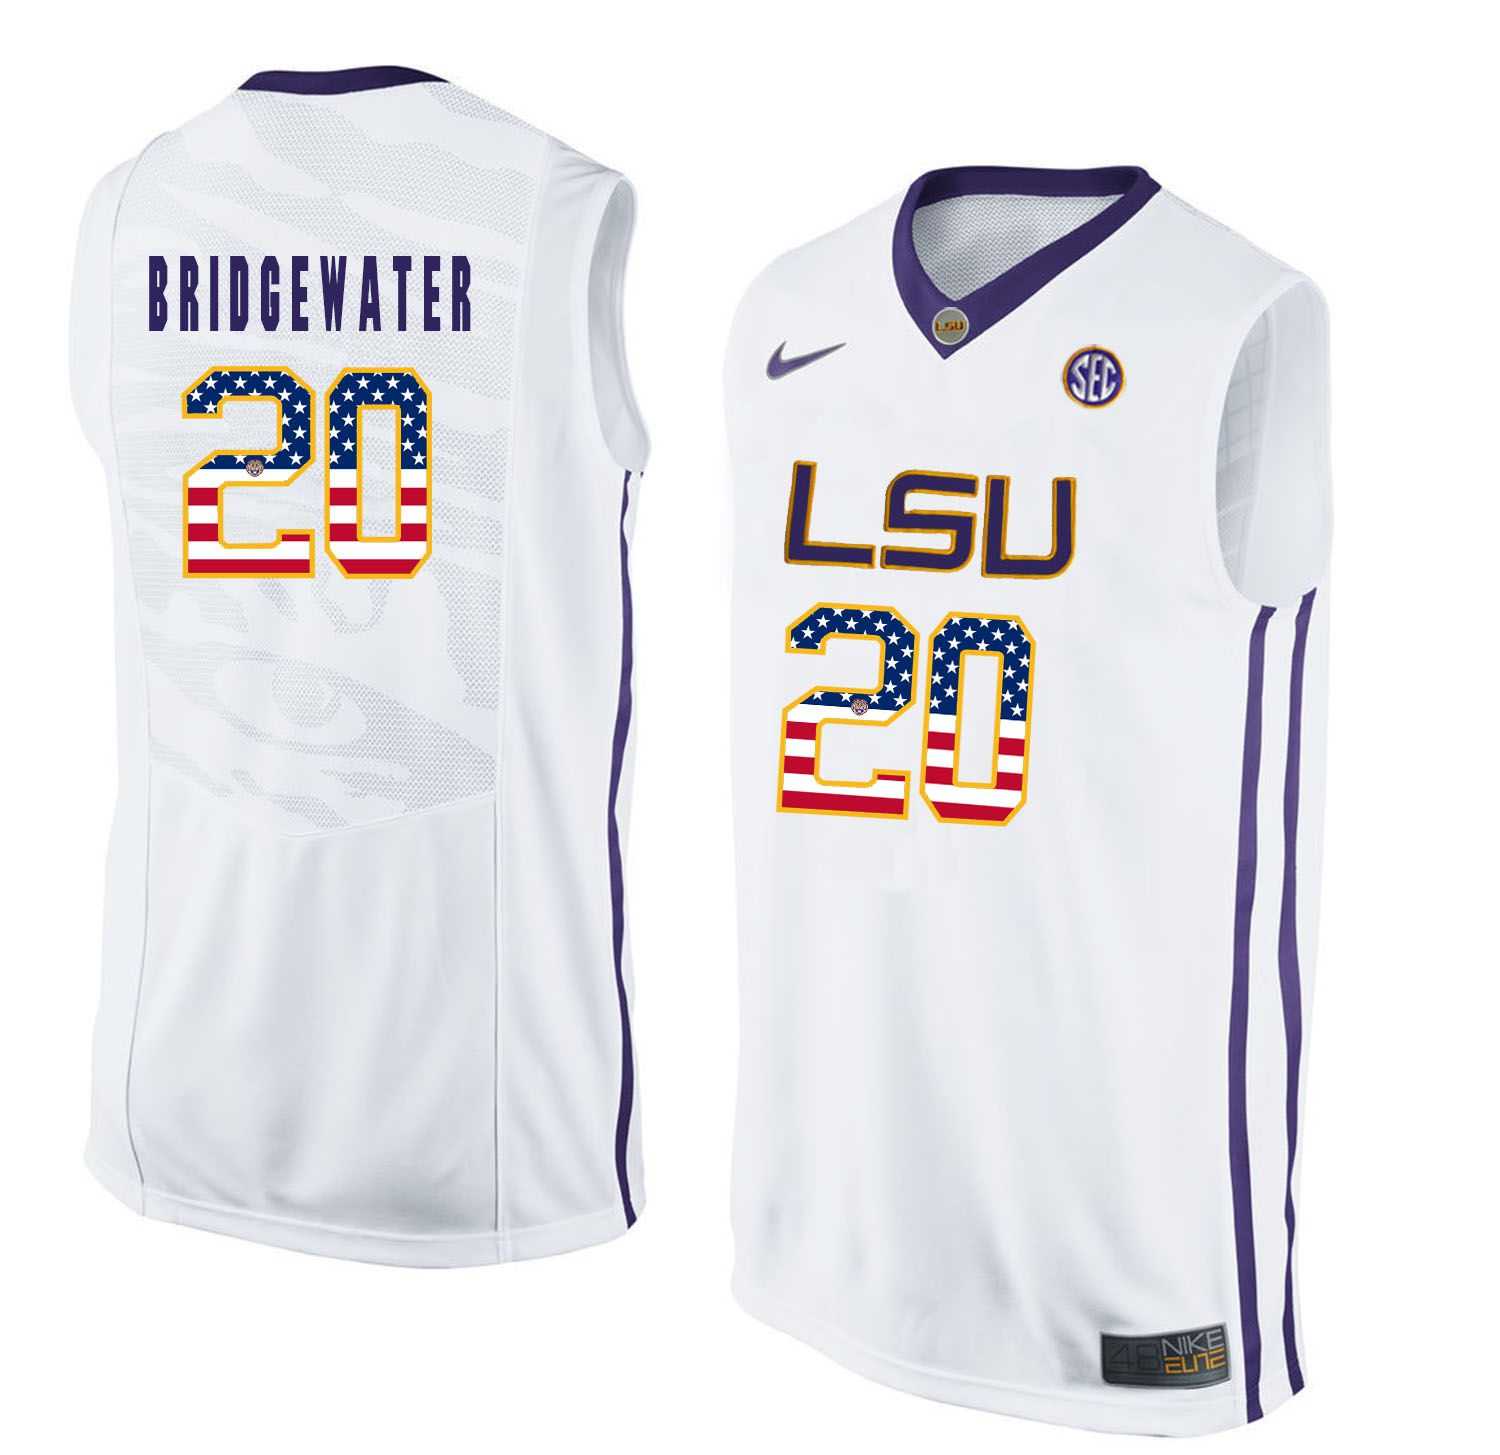 Men LSU Tigers 20 Bridgewater White Flag Customized NCAA Jerseys